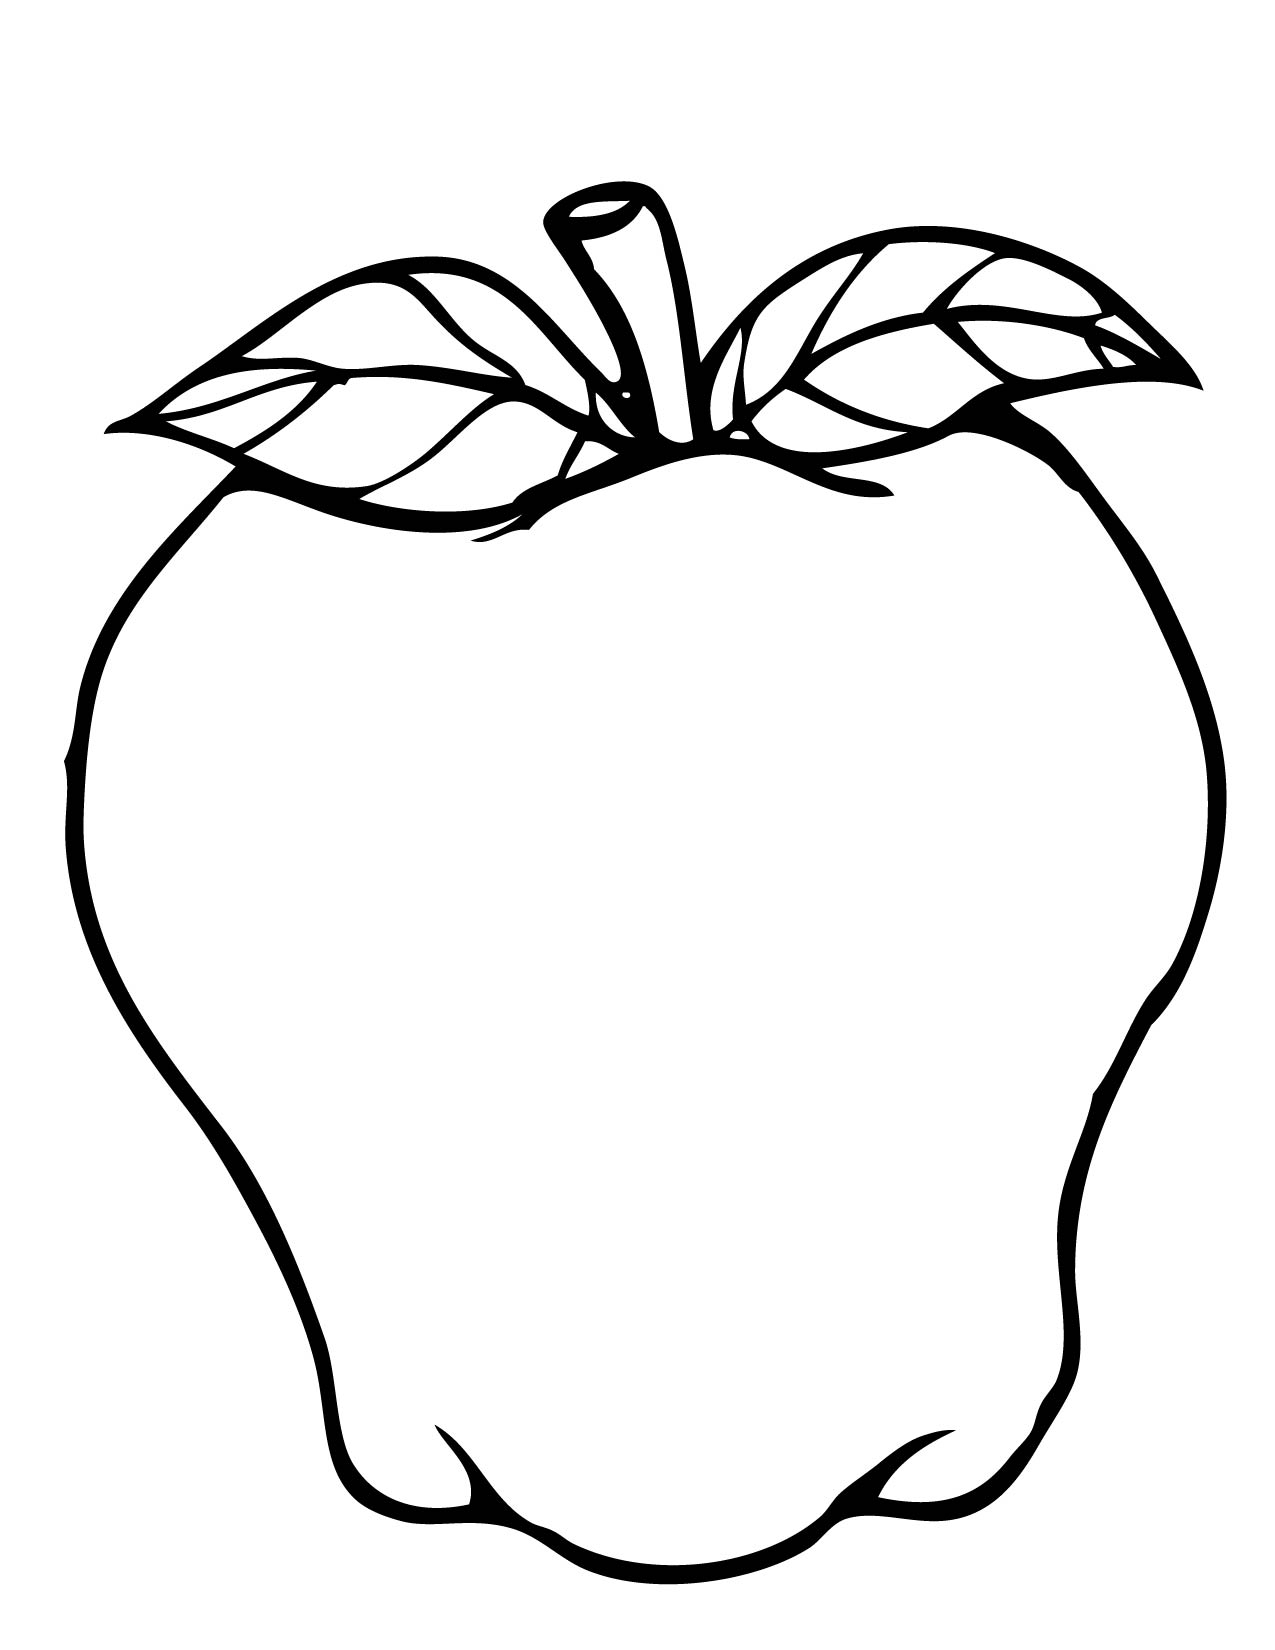 a apple coloring pages - photo #29